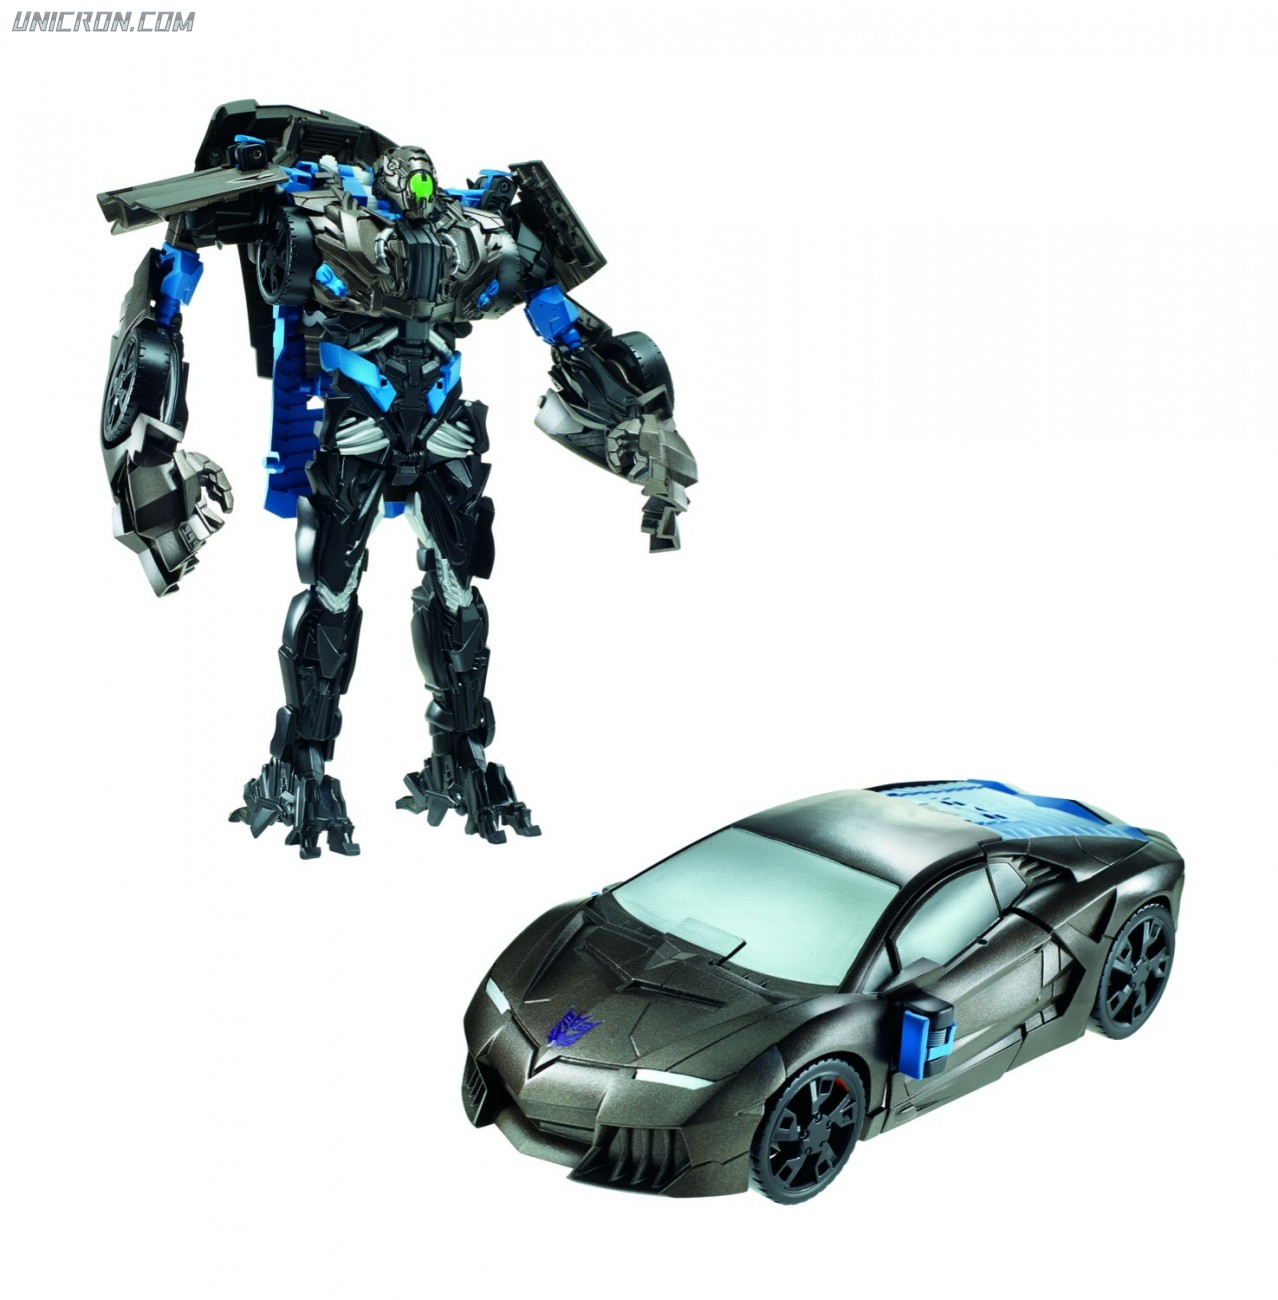 Transformers 4 Age of Extinction Lockdown - AoE Flip & Change toy